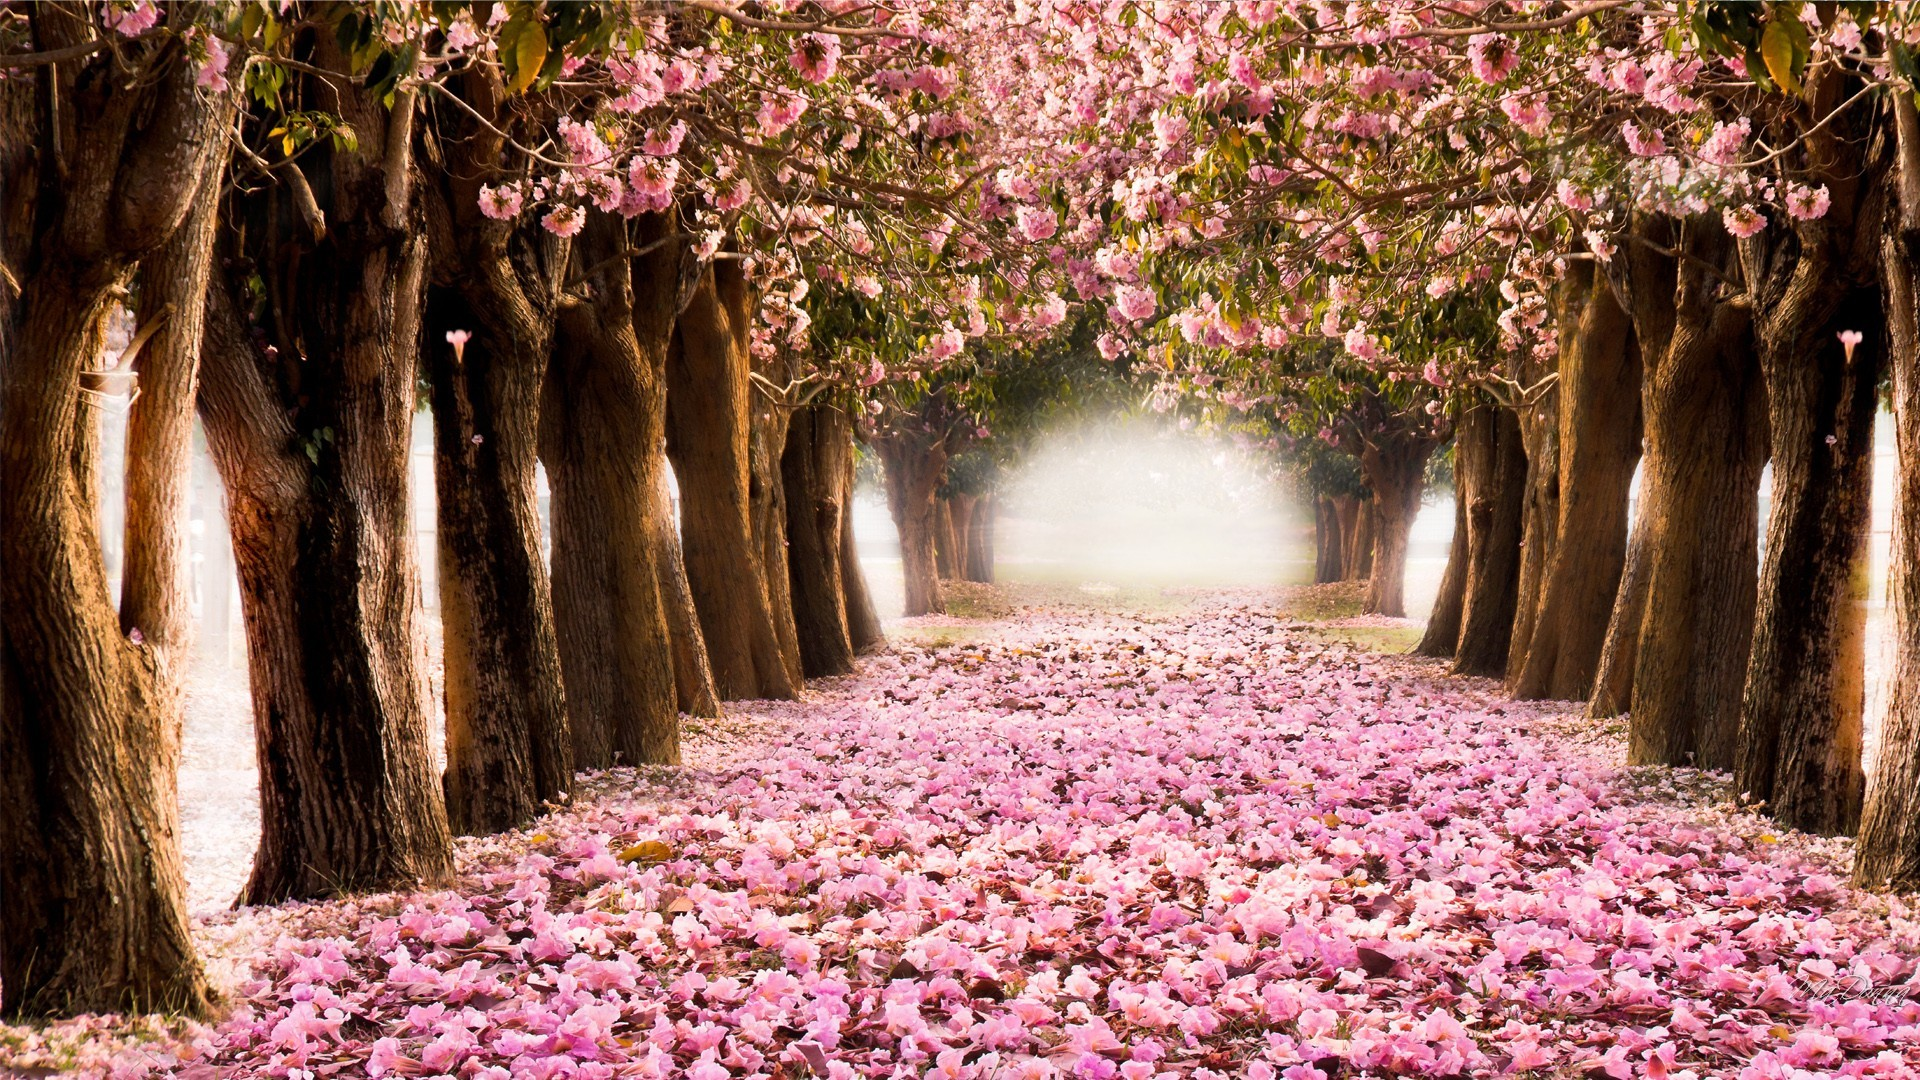 HQ Wallpapers Plus provides different size of Spring Trees And Flowers Desktop  Wallpapers. You can